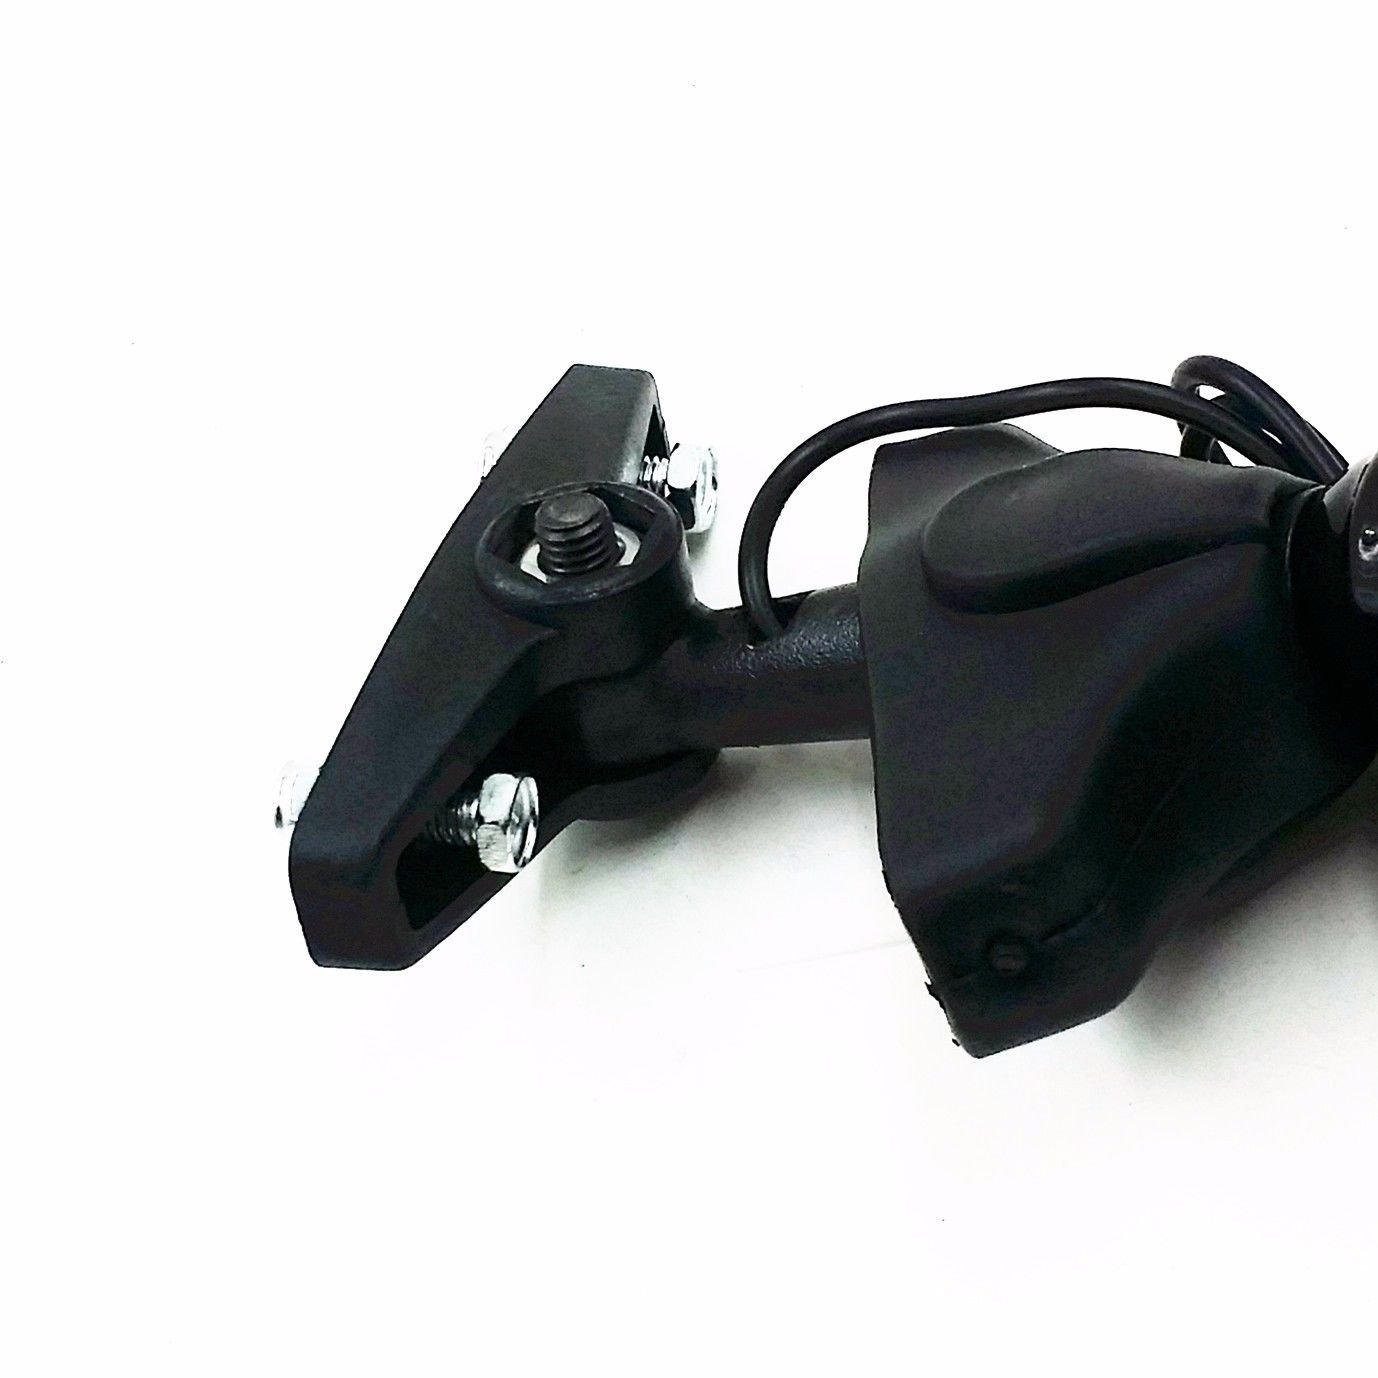 Turn Signal Integrated Fairing Mount Racing Sport Bike Rear View Rearview Side Mirror for Triumph Ducati Kawasaki Suzuki GSXR Hayabusa Honda CBR CBF Yamaha Sport Street Bike Black//Clear